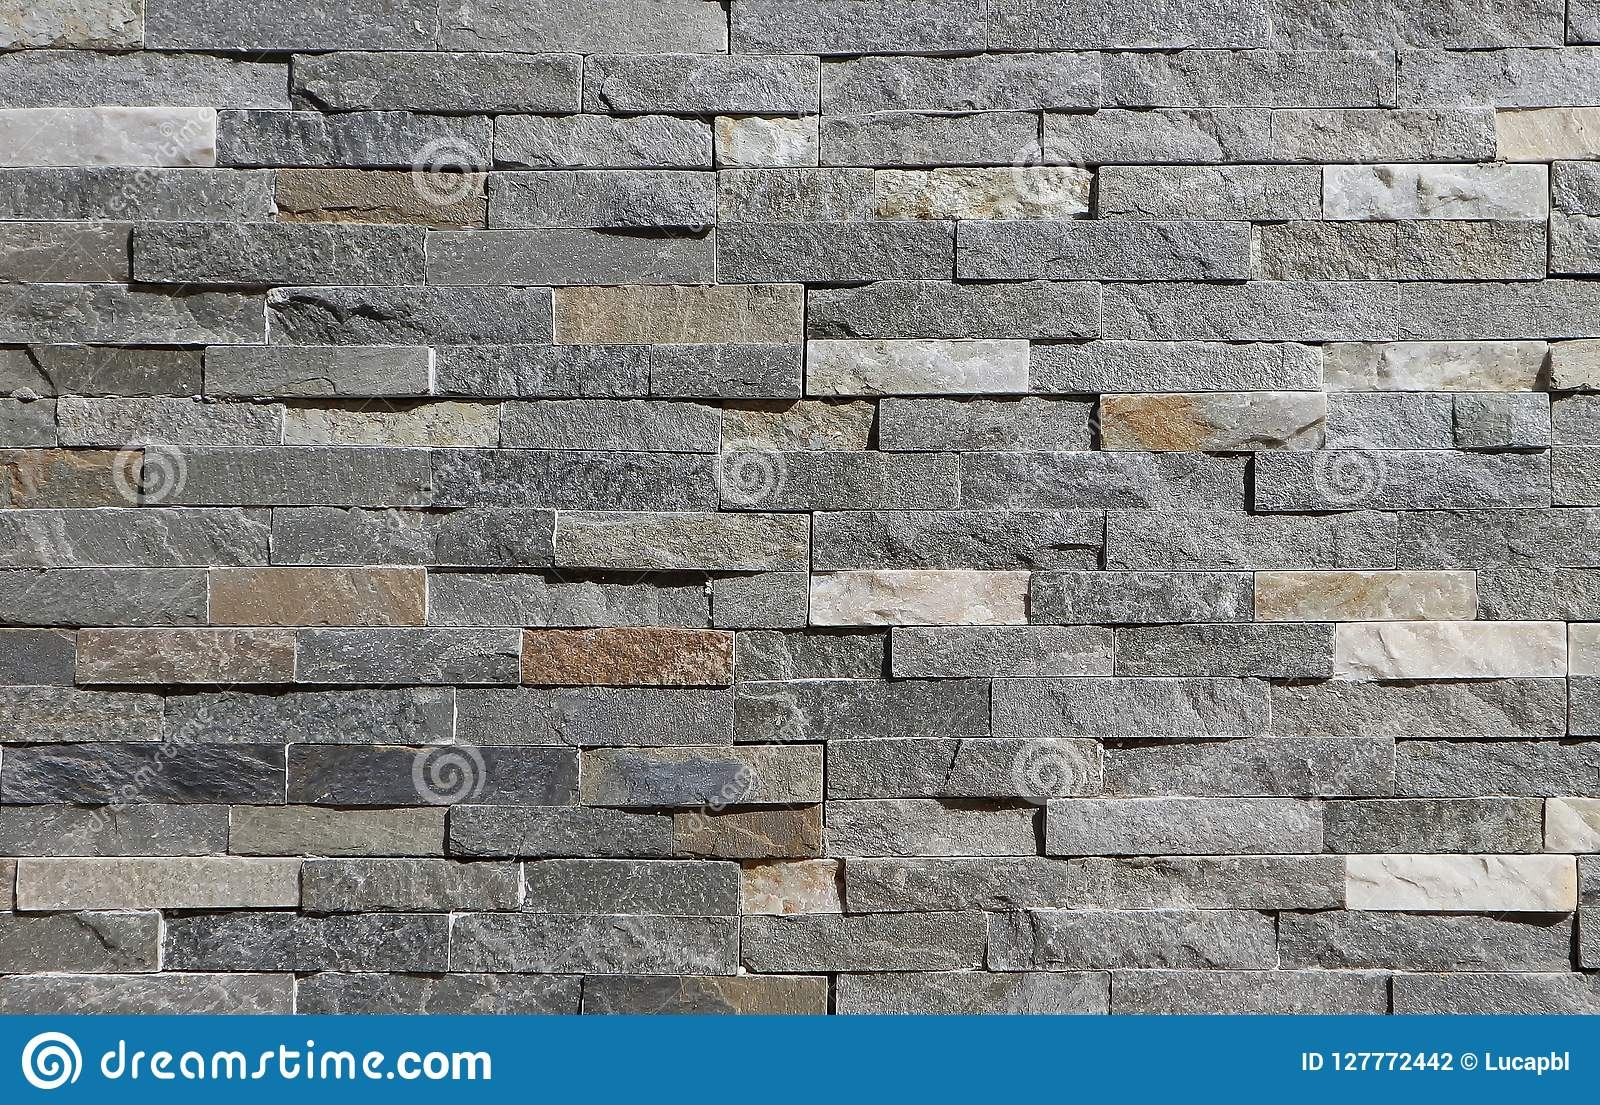 Stone Wall Cladding Made Of Horizontal Gray Brown And White Strips Of Rock Stacked Stock Photo Image Of Background House 127772442